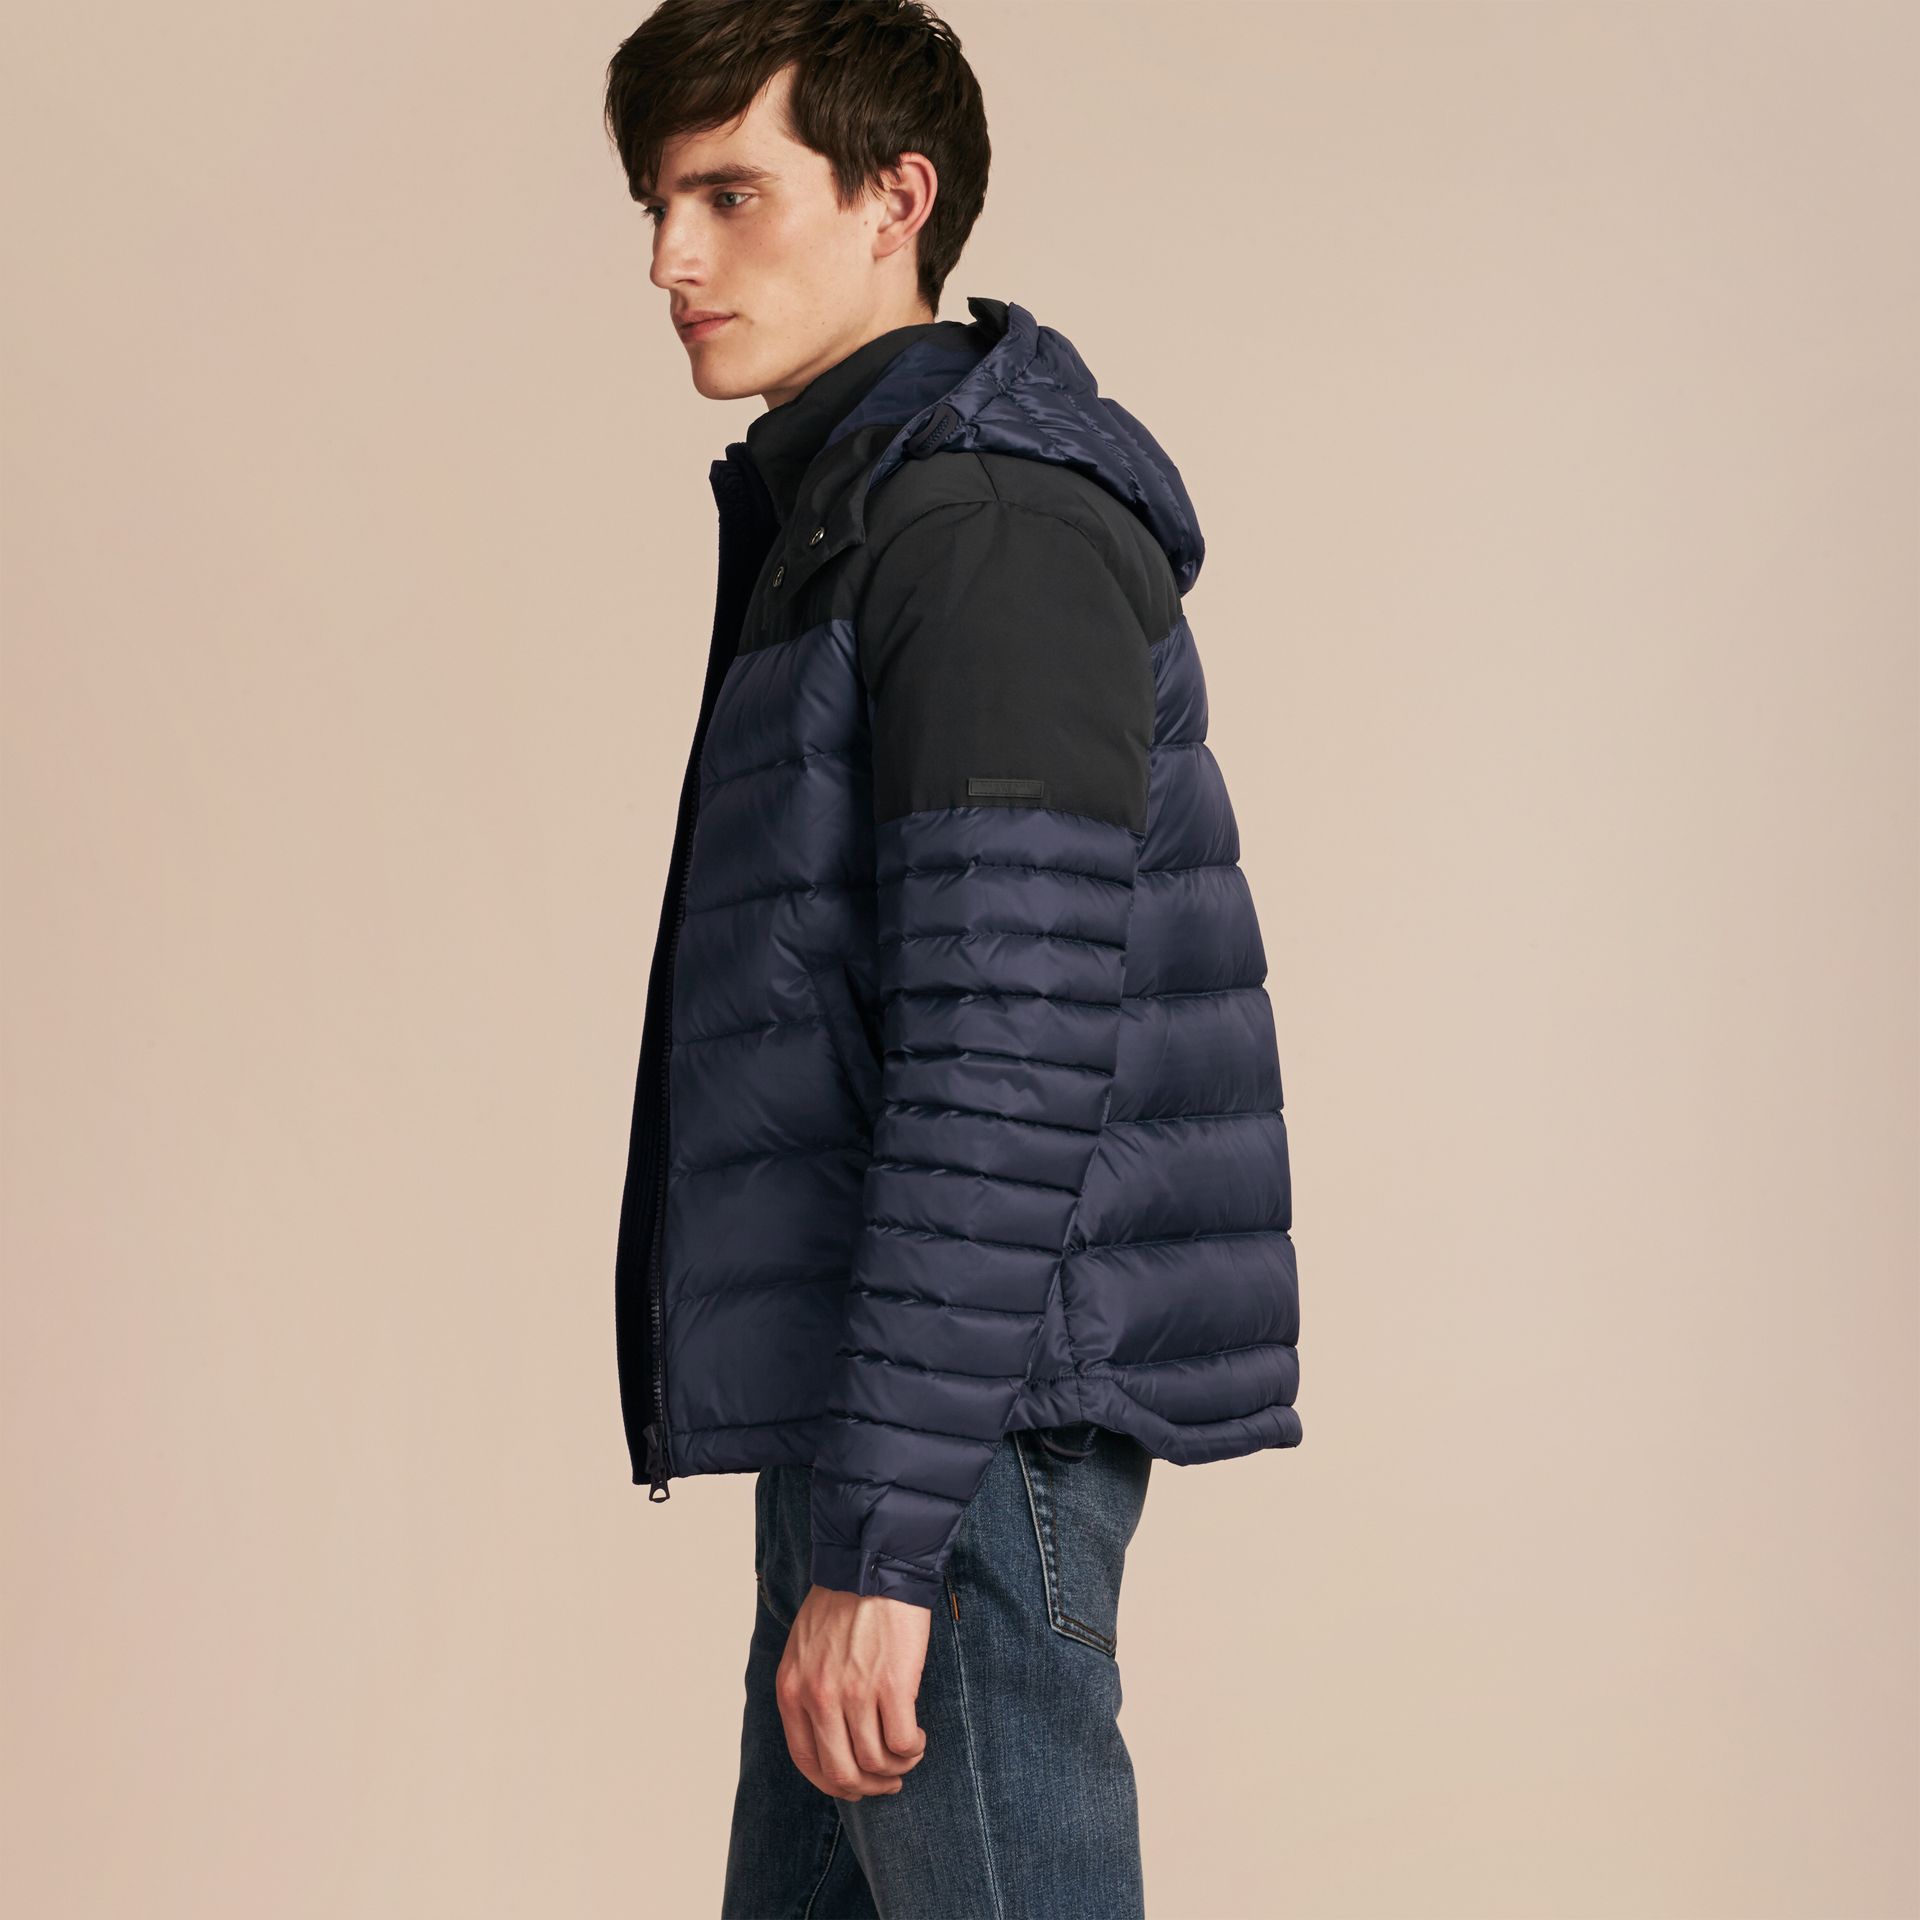 Navy Mid-weight Down-filled Technical Puffer Jacket Navy - gallery image 6